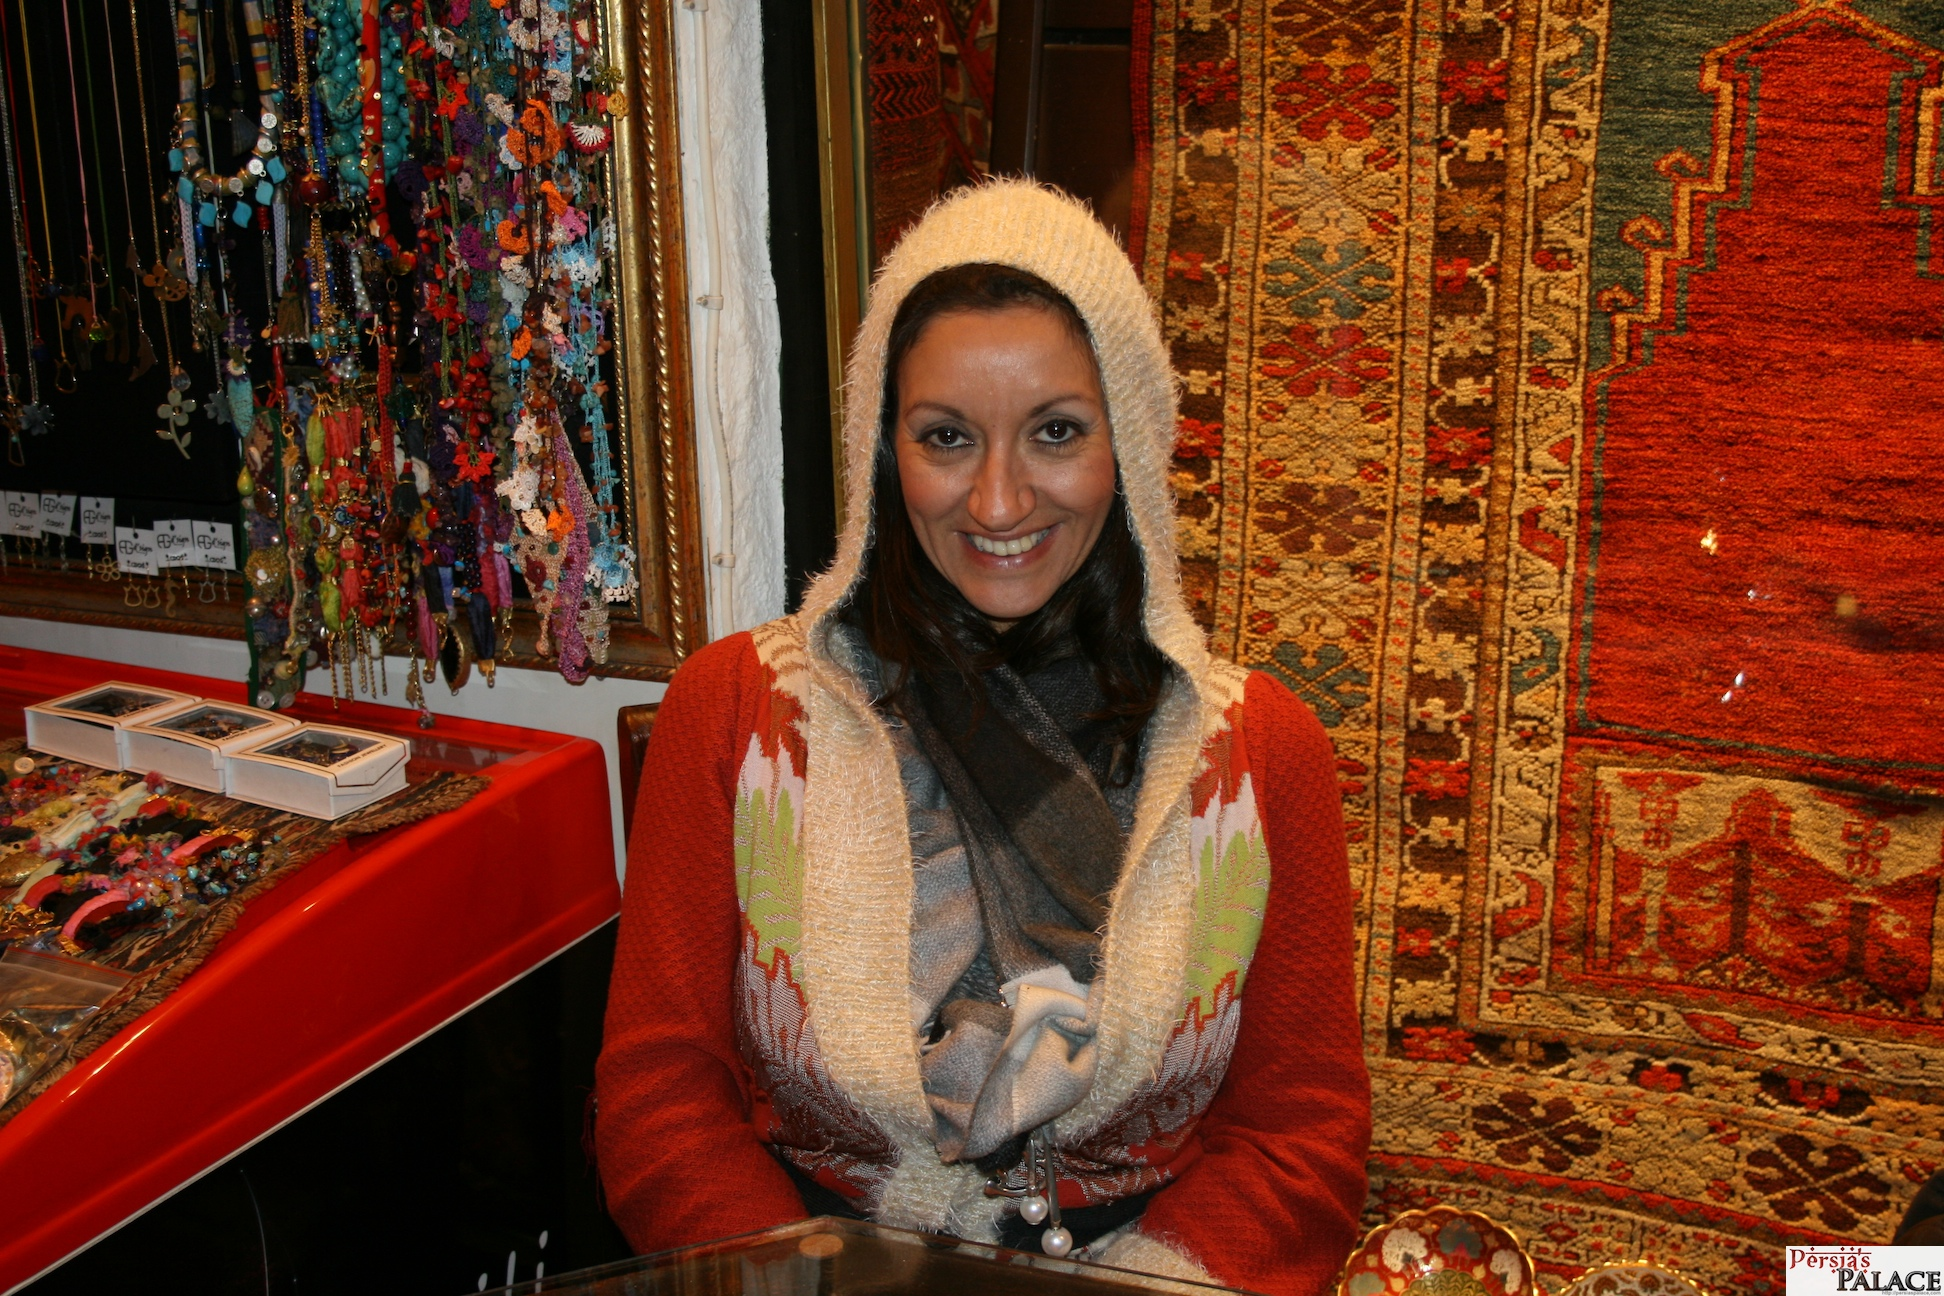 Persia monir blog